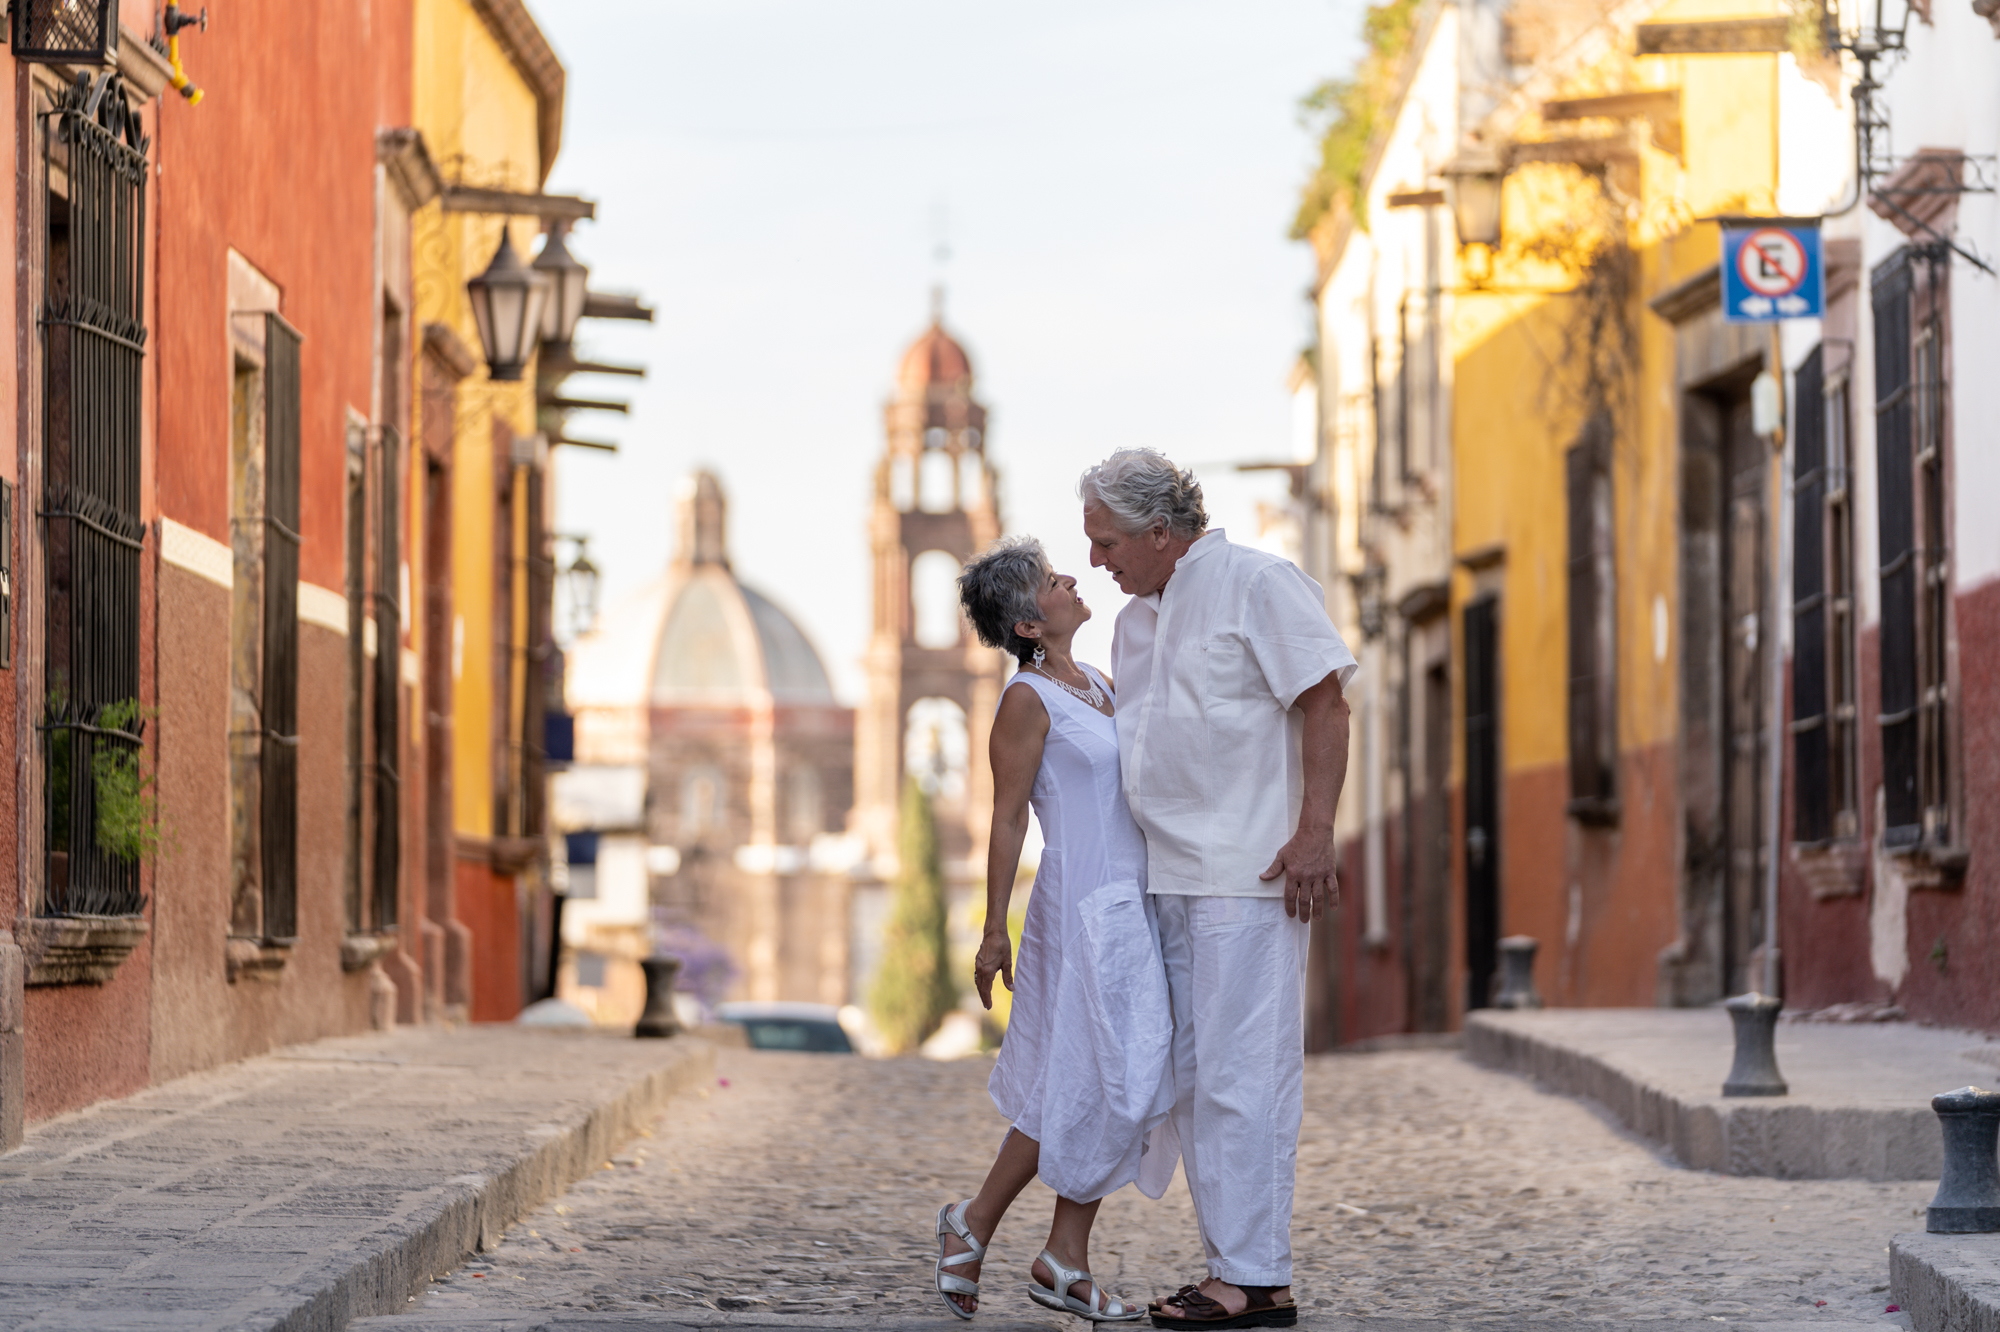 Photoshoot session in San Miguel de Allende with Suzanne and Leo-32.jpg